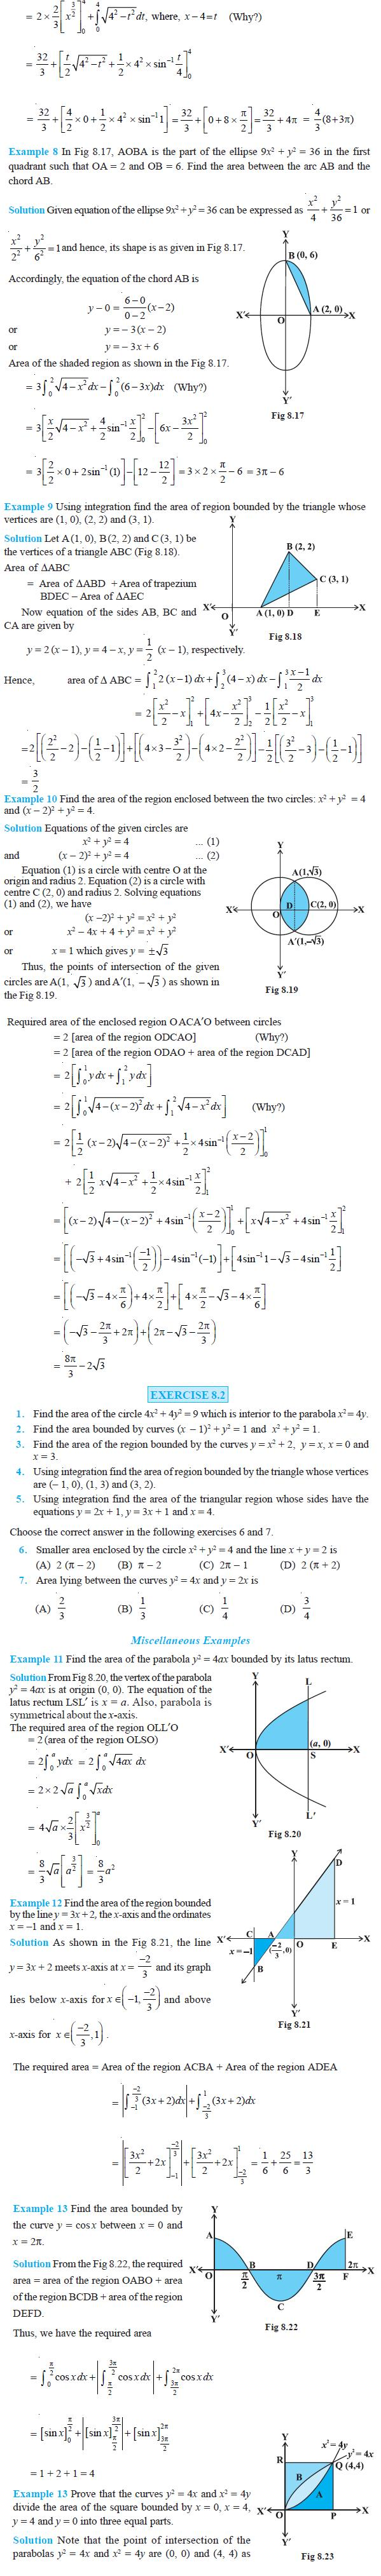 NCERT Class XII Maths Chapter 8 - Application of Integrals